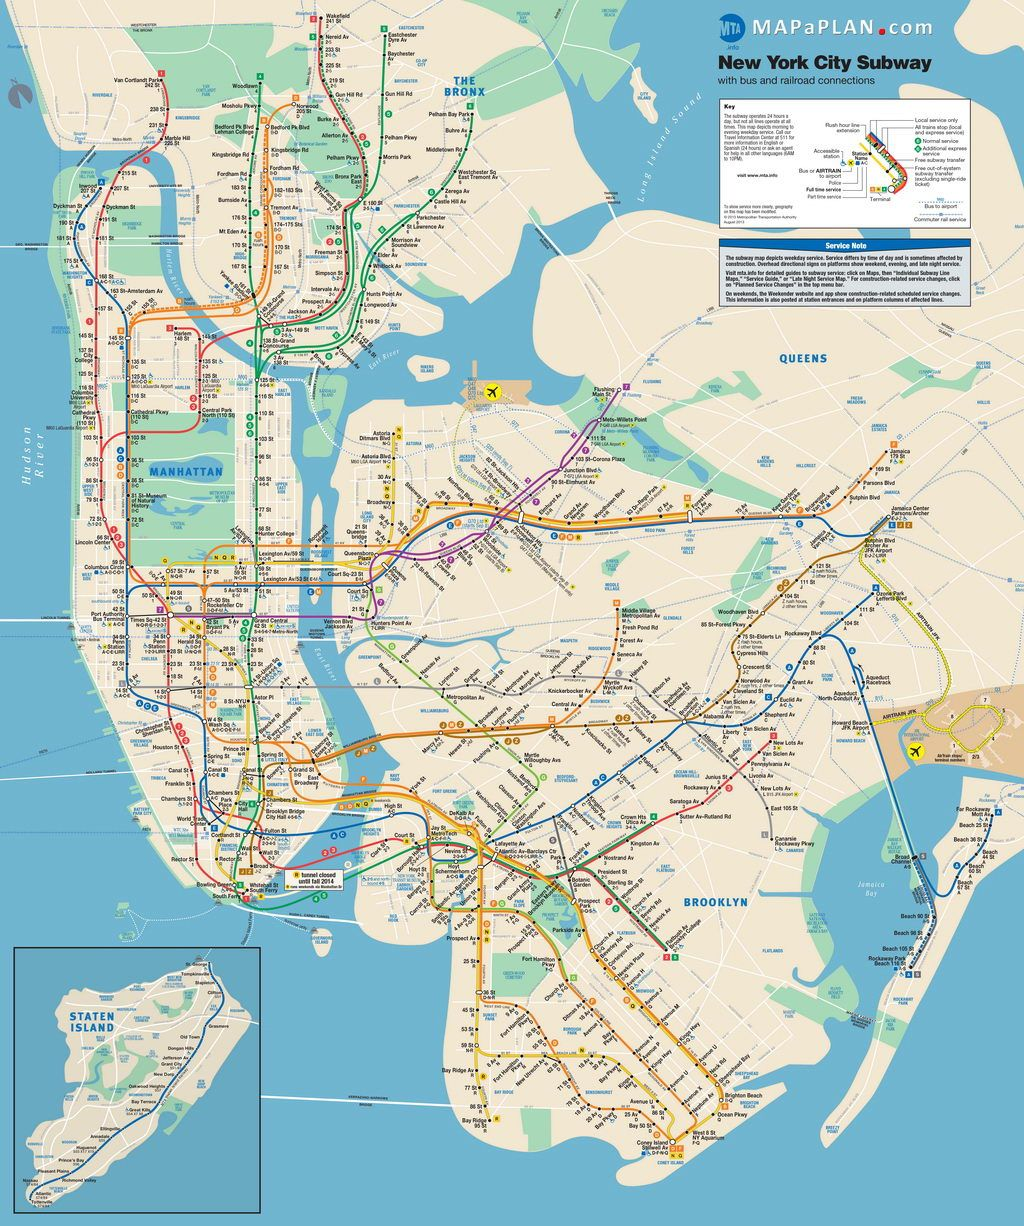 centralparkplacesnewyorktoptouristattractionsmap – Tourist Attractions Nyc Map